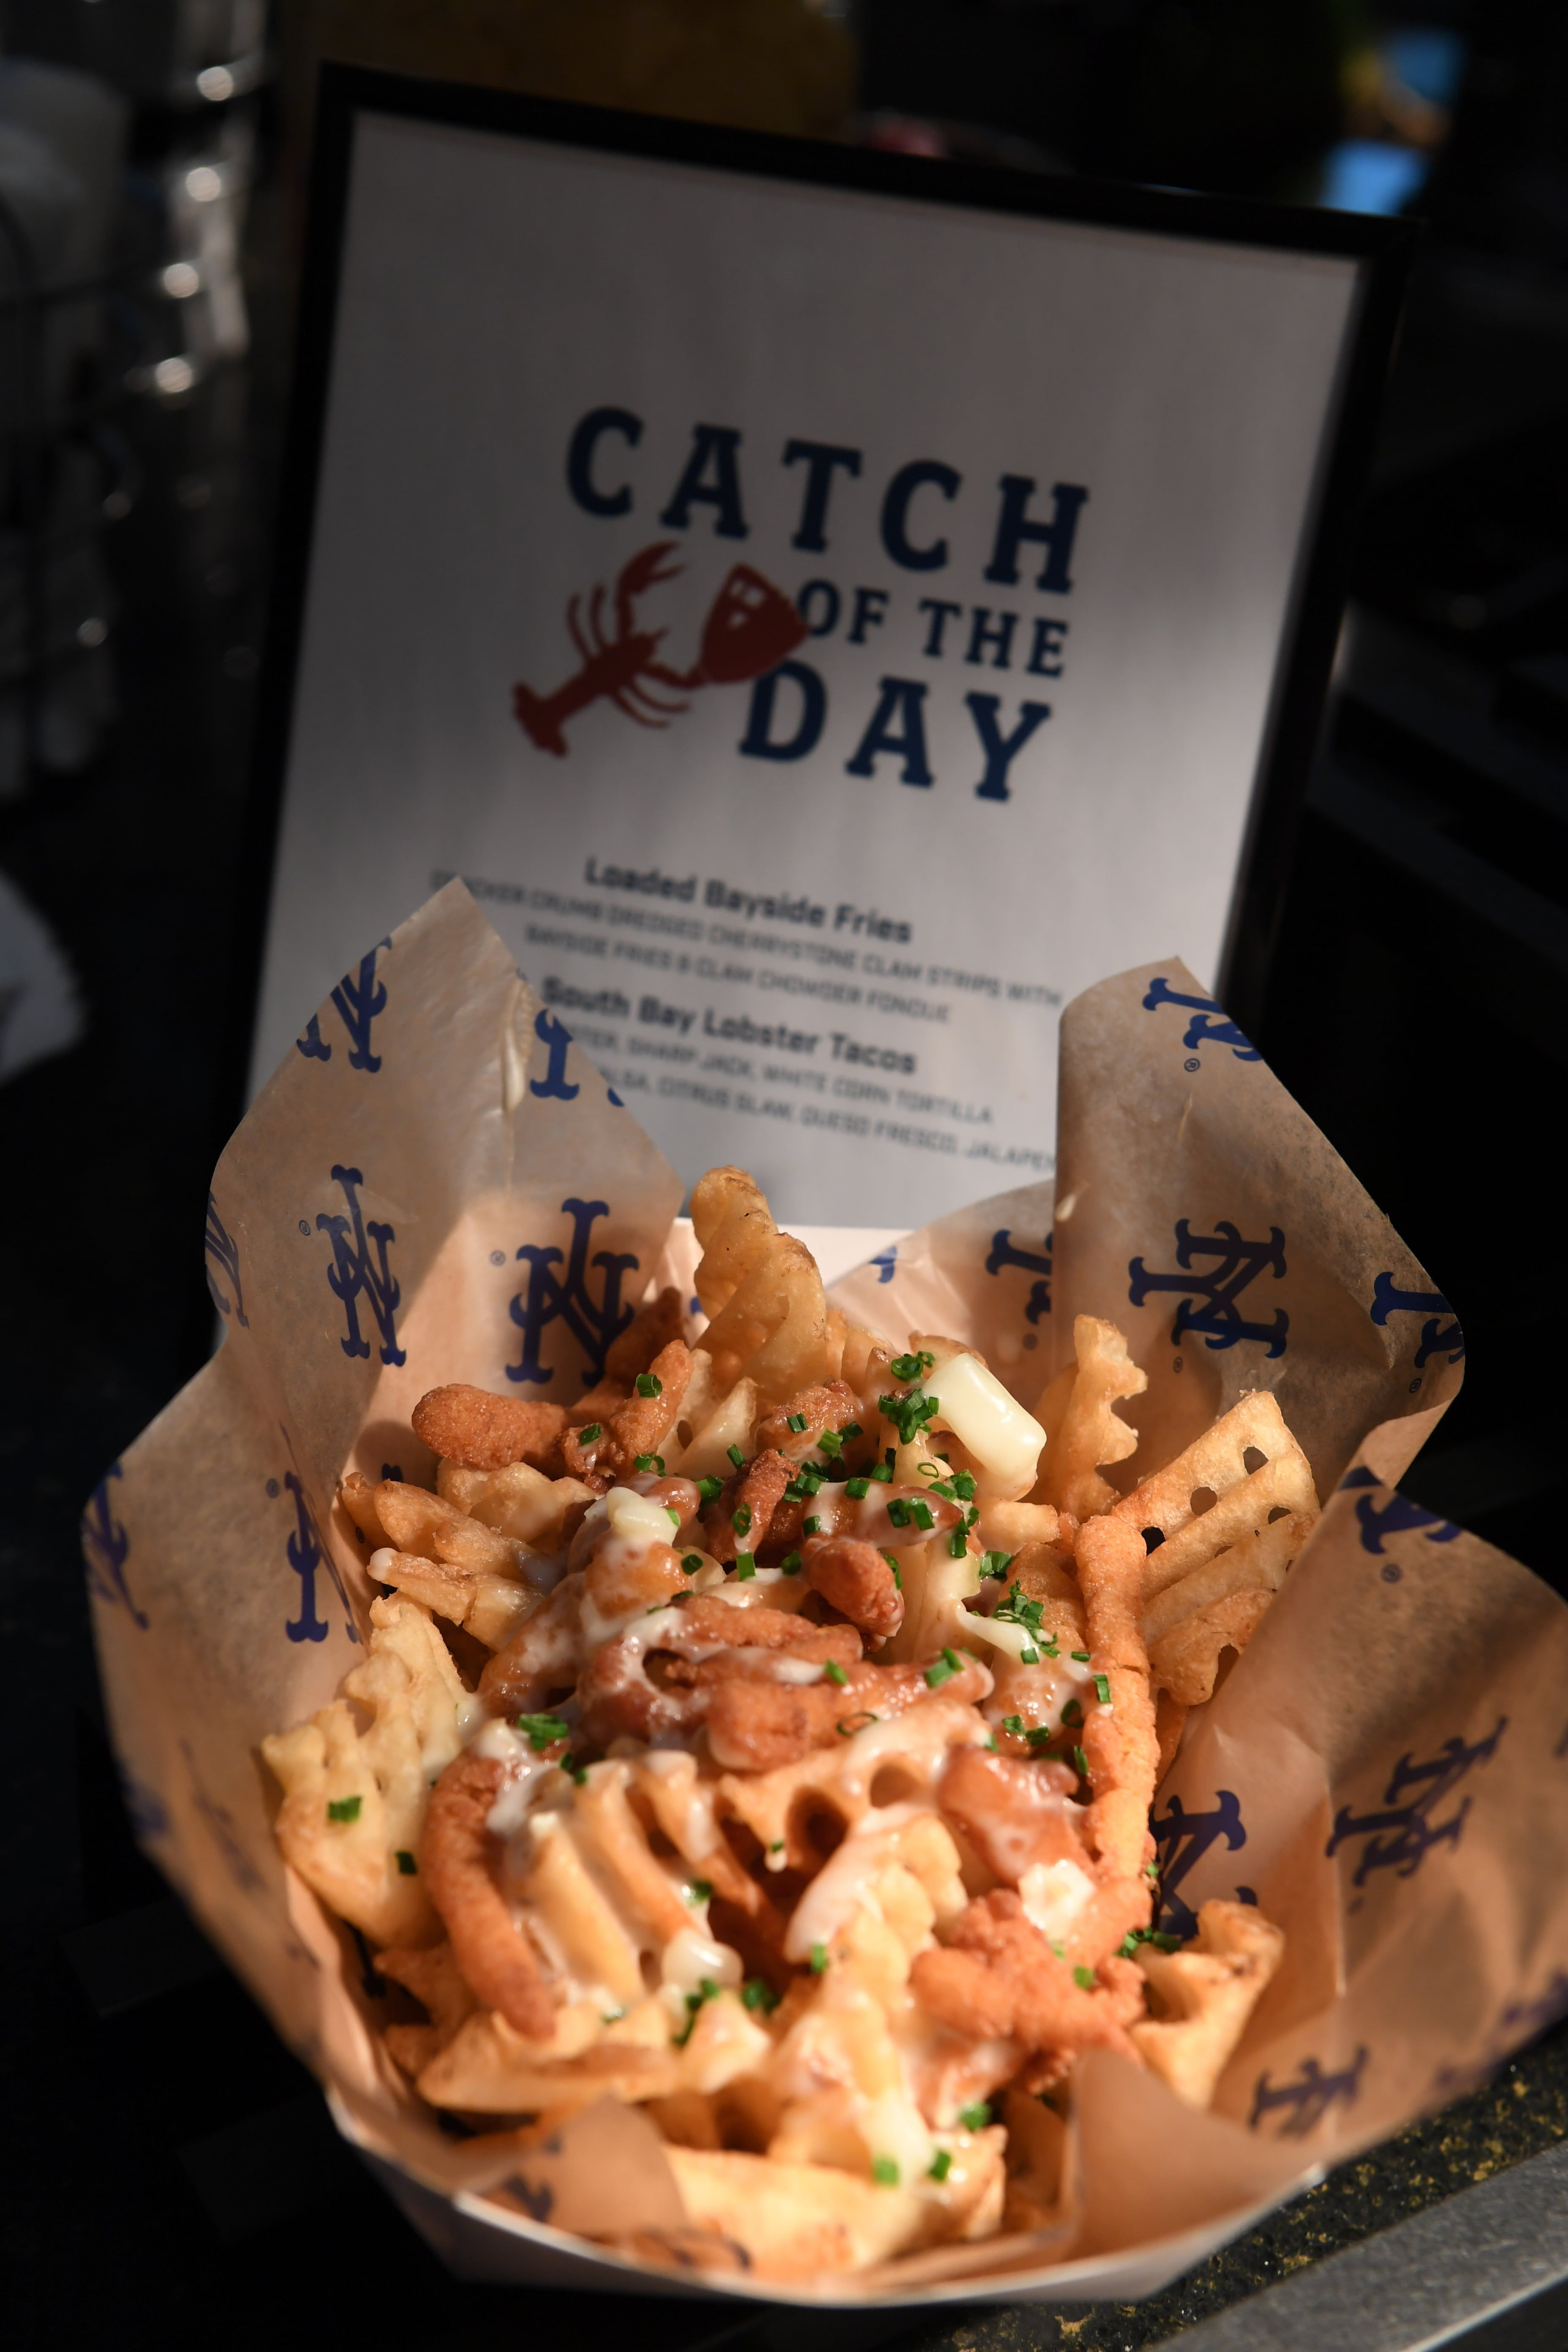 Loaded Bayside Fries Catch Of The Day